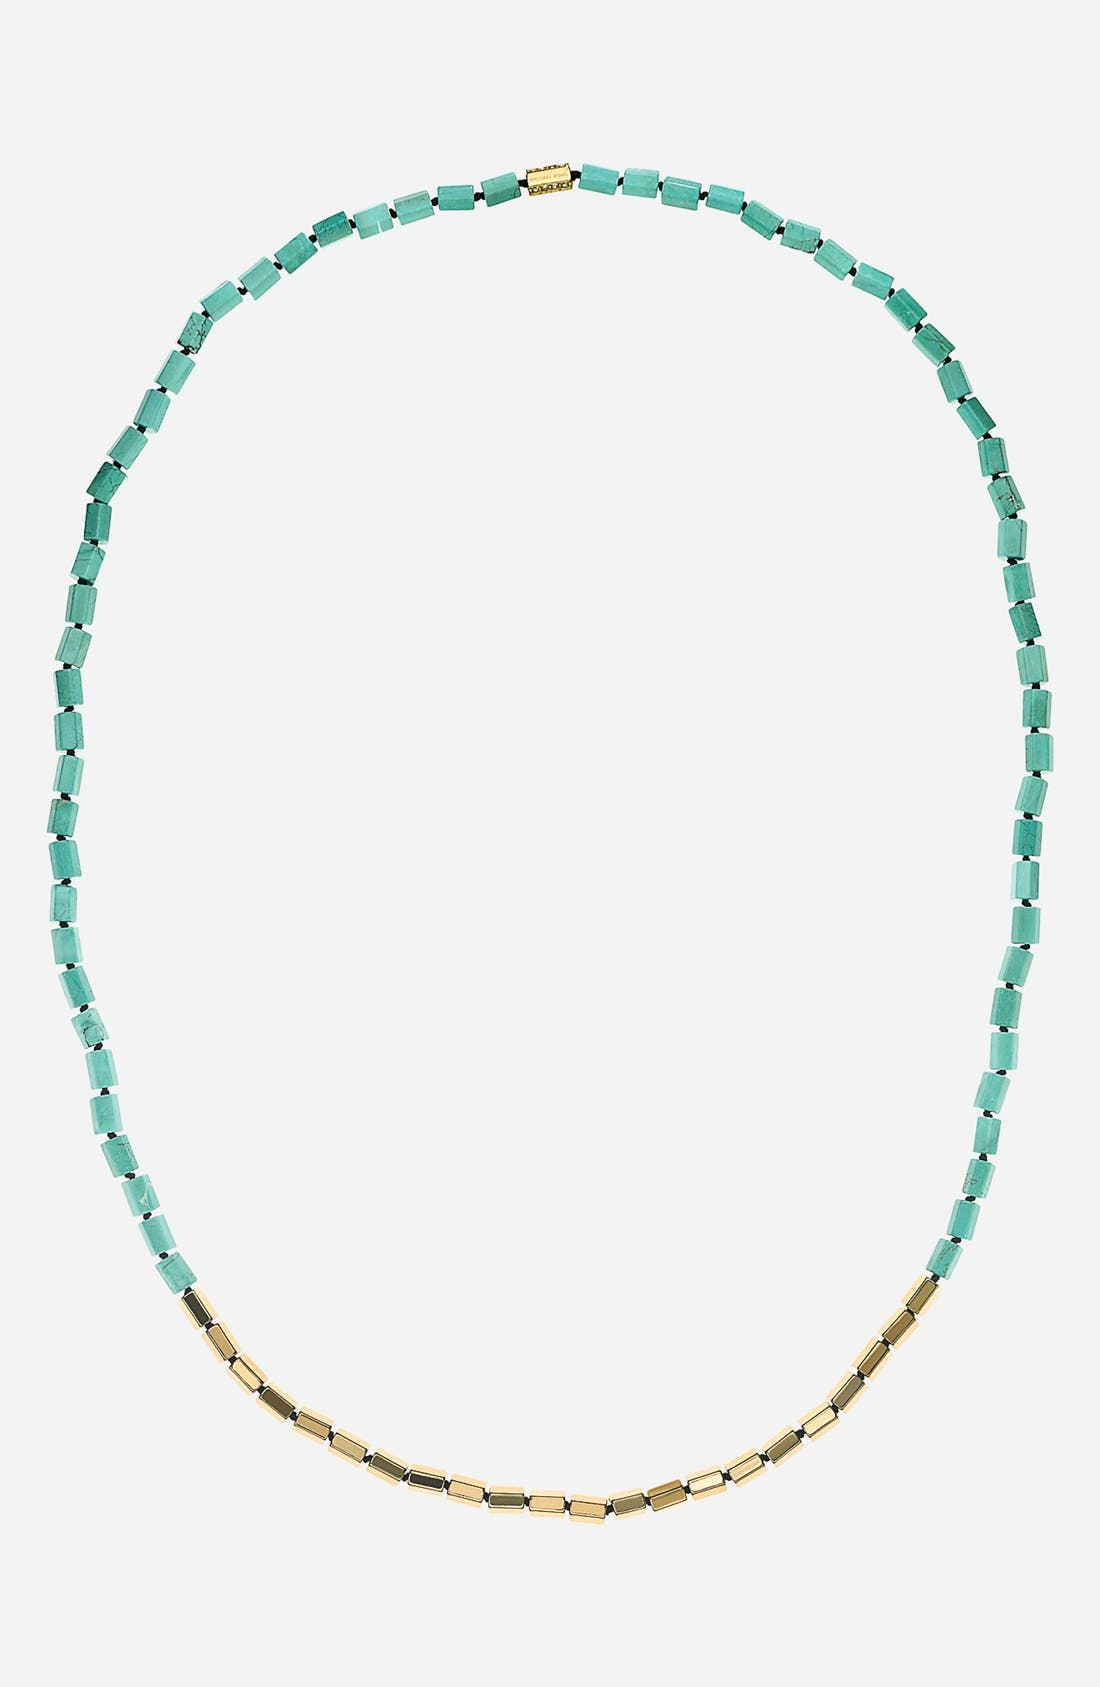 Alternate Image 1 Selected - Michael Kors 'Seaside Luxe' Long Stone Beaded Necklace